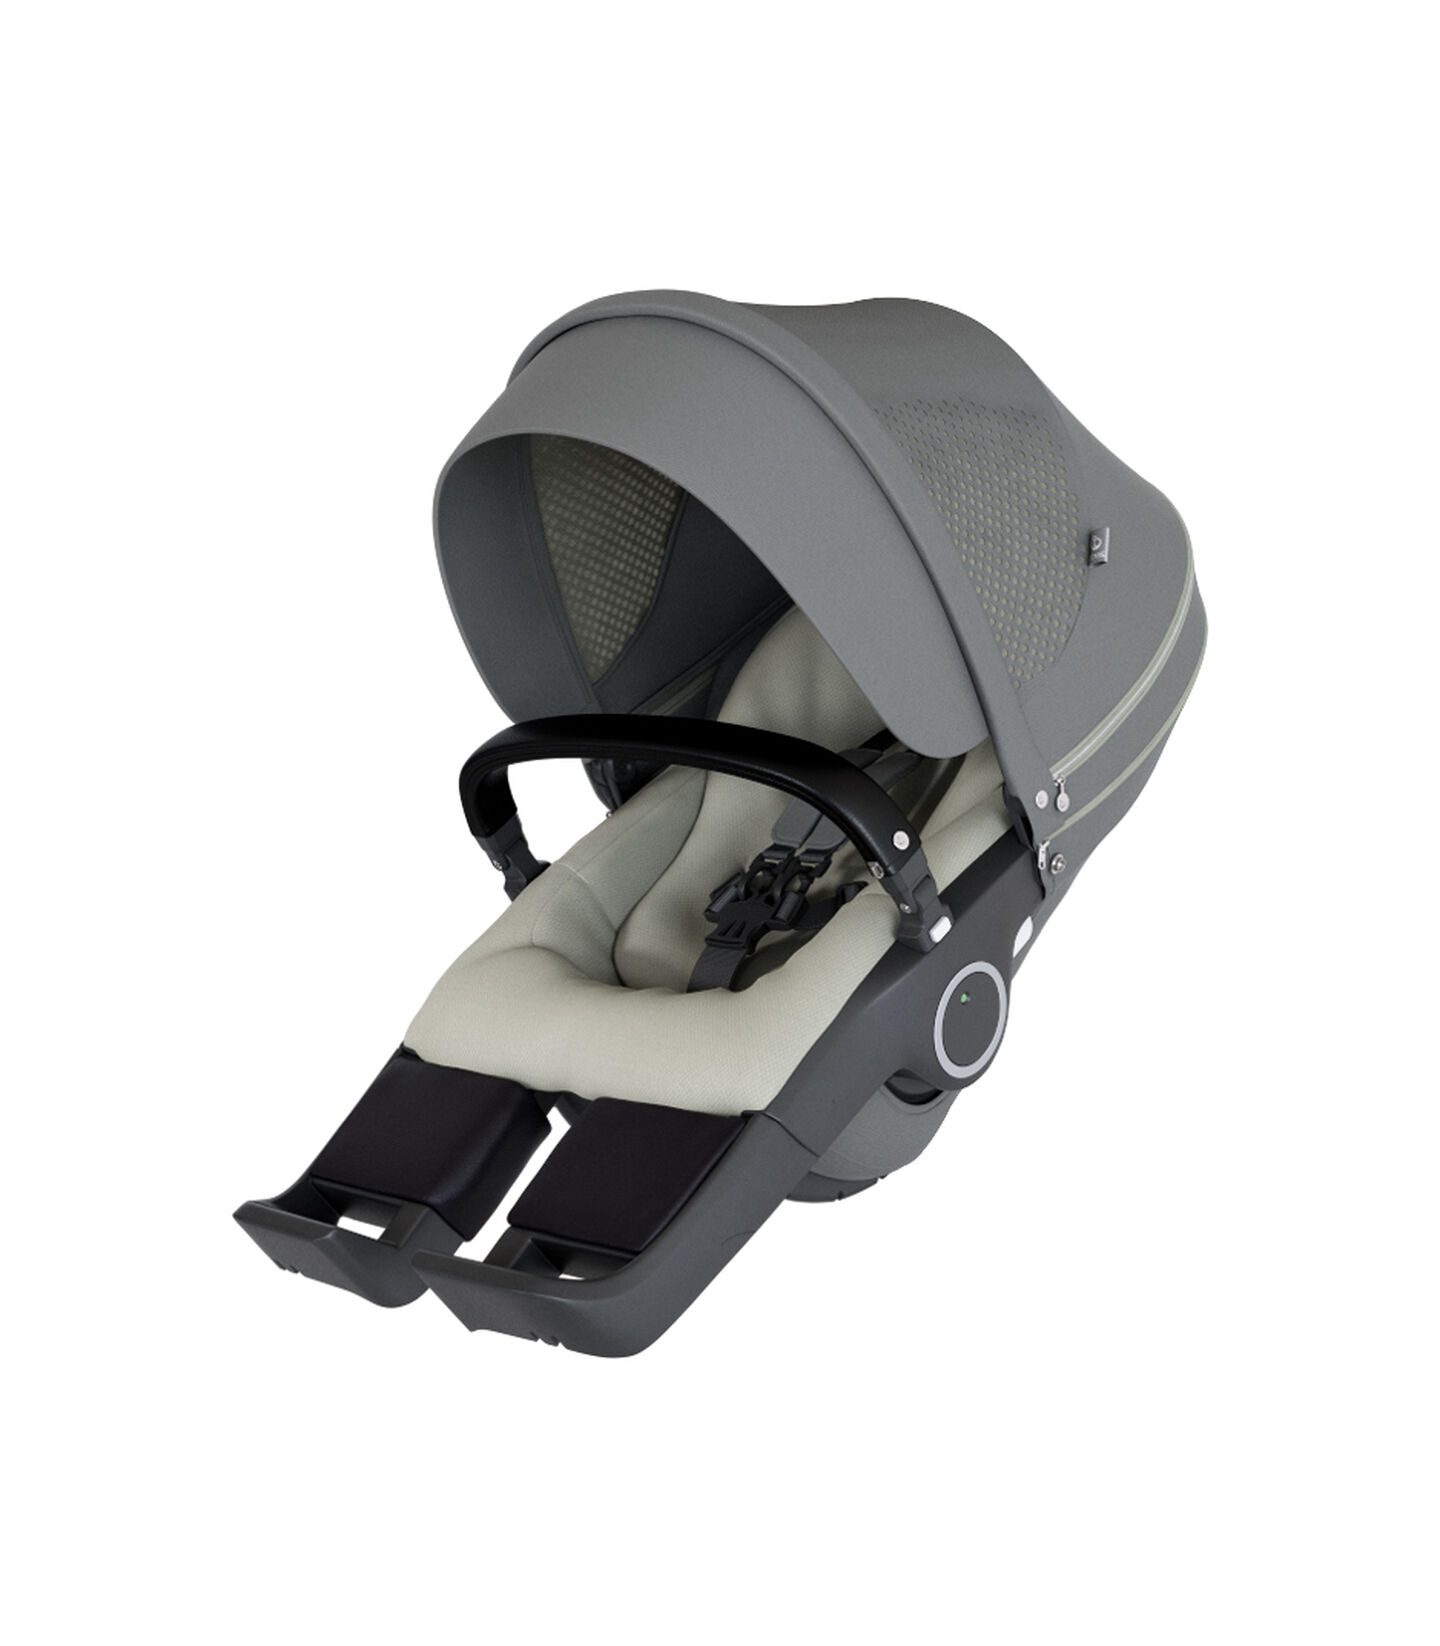 Stokke® Stroller Seat Athleisure Green, Athleisure Green, mainview view 2